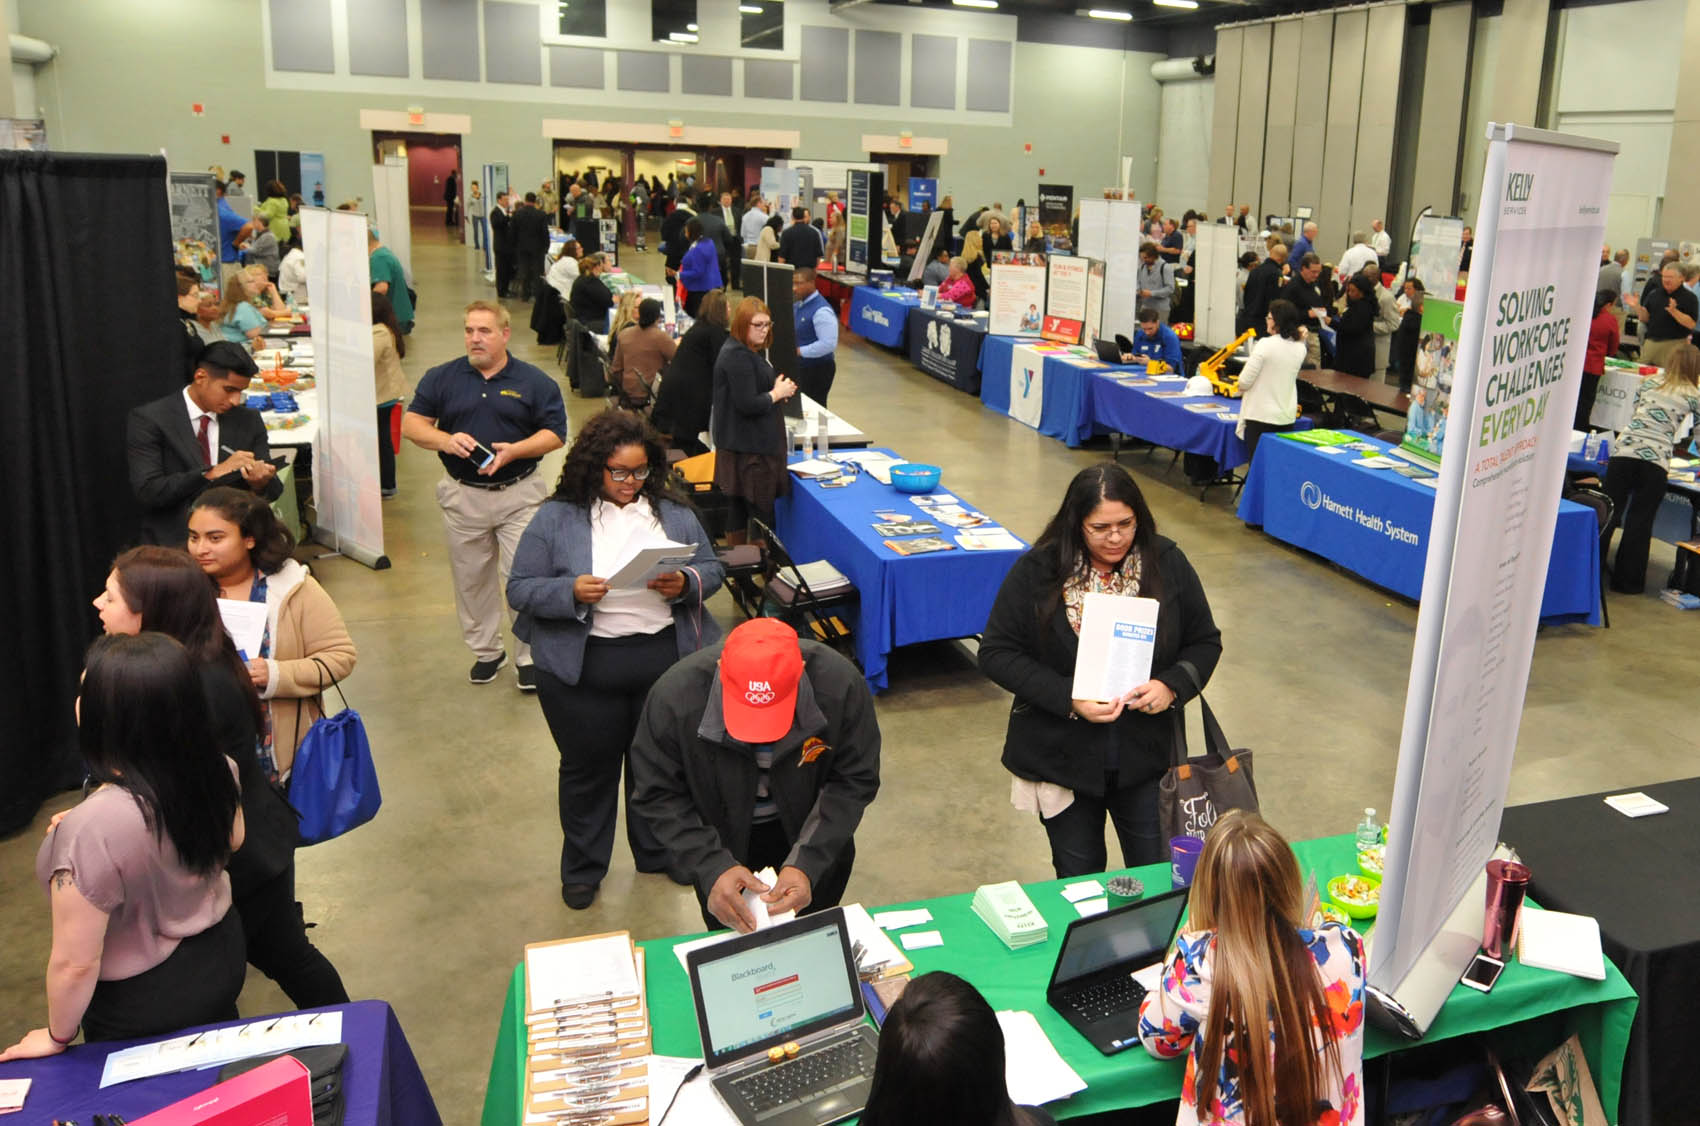 Click to enlarge,  Approximately 100 exhibitors were present for the Central Carolina Community College Annual Career Fair 2016. For more information on the CCCC Career Center, people can contact the Career Center at 919-718-7396 or visit the CCCC website at www.cccc.edu/careercenter.